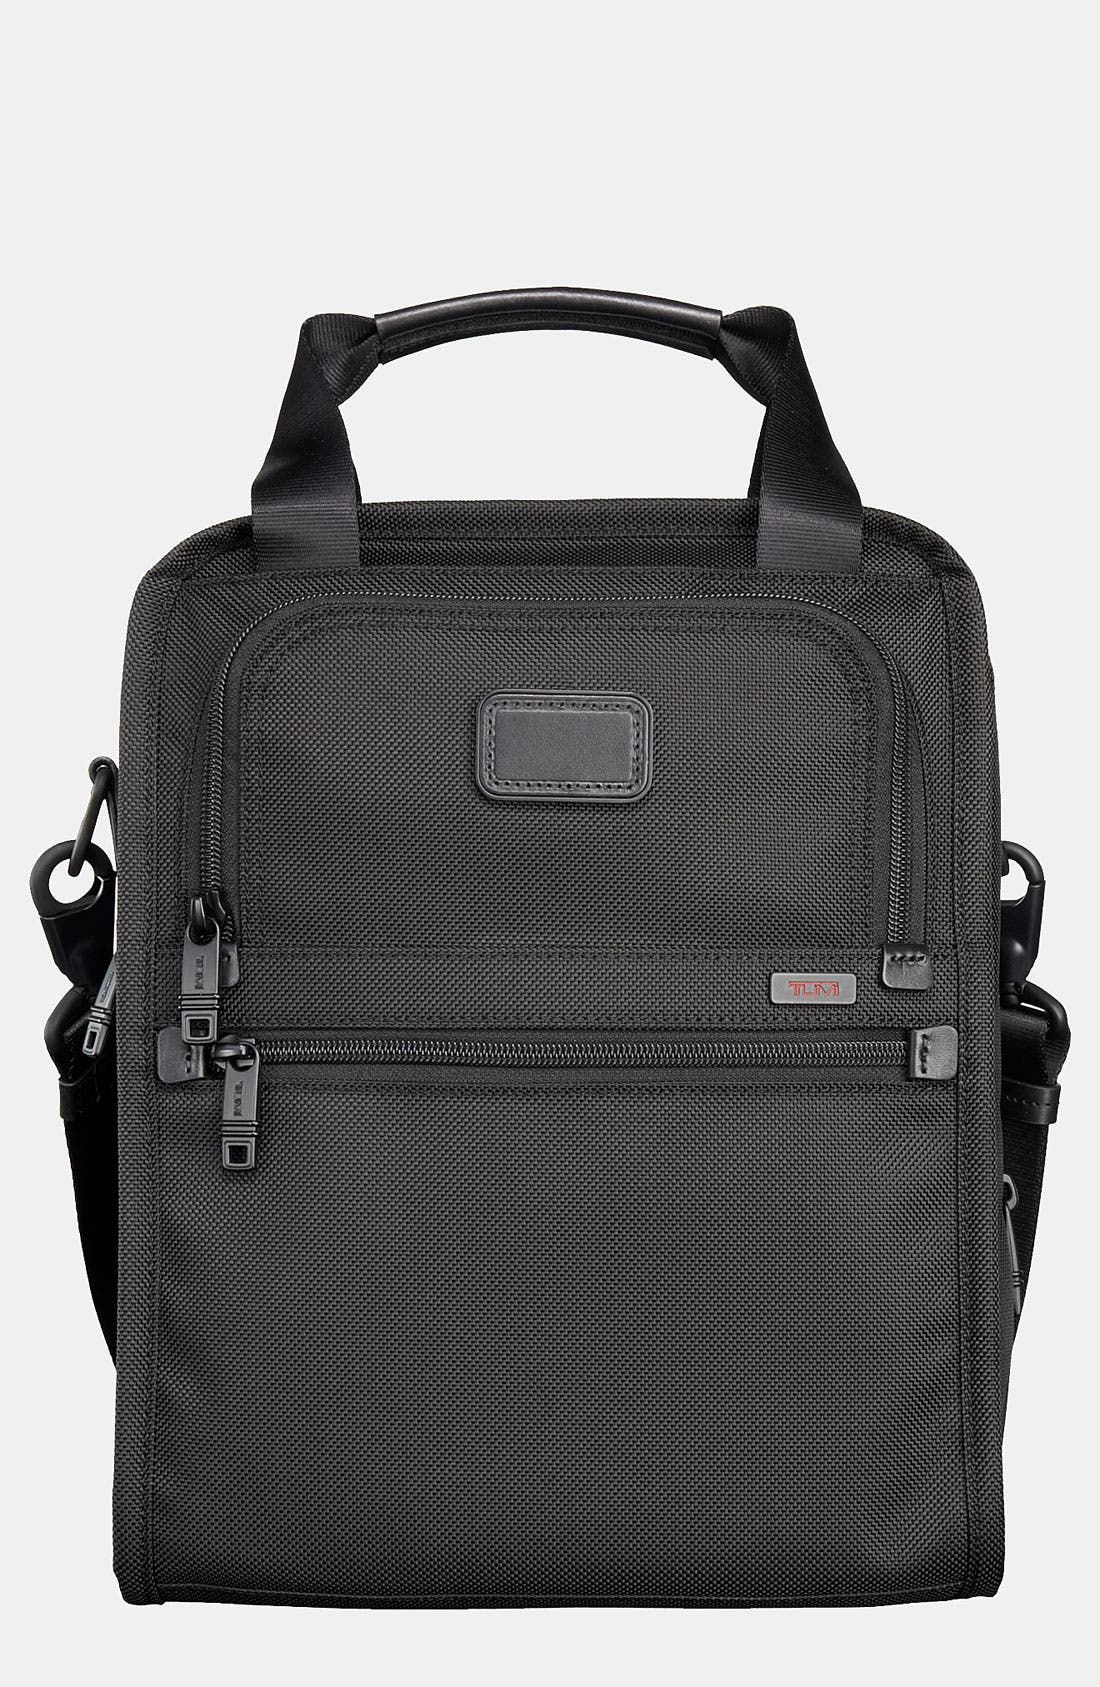 Main Image - Tumi 'Medium Alpha' Travel Tote